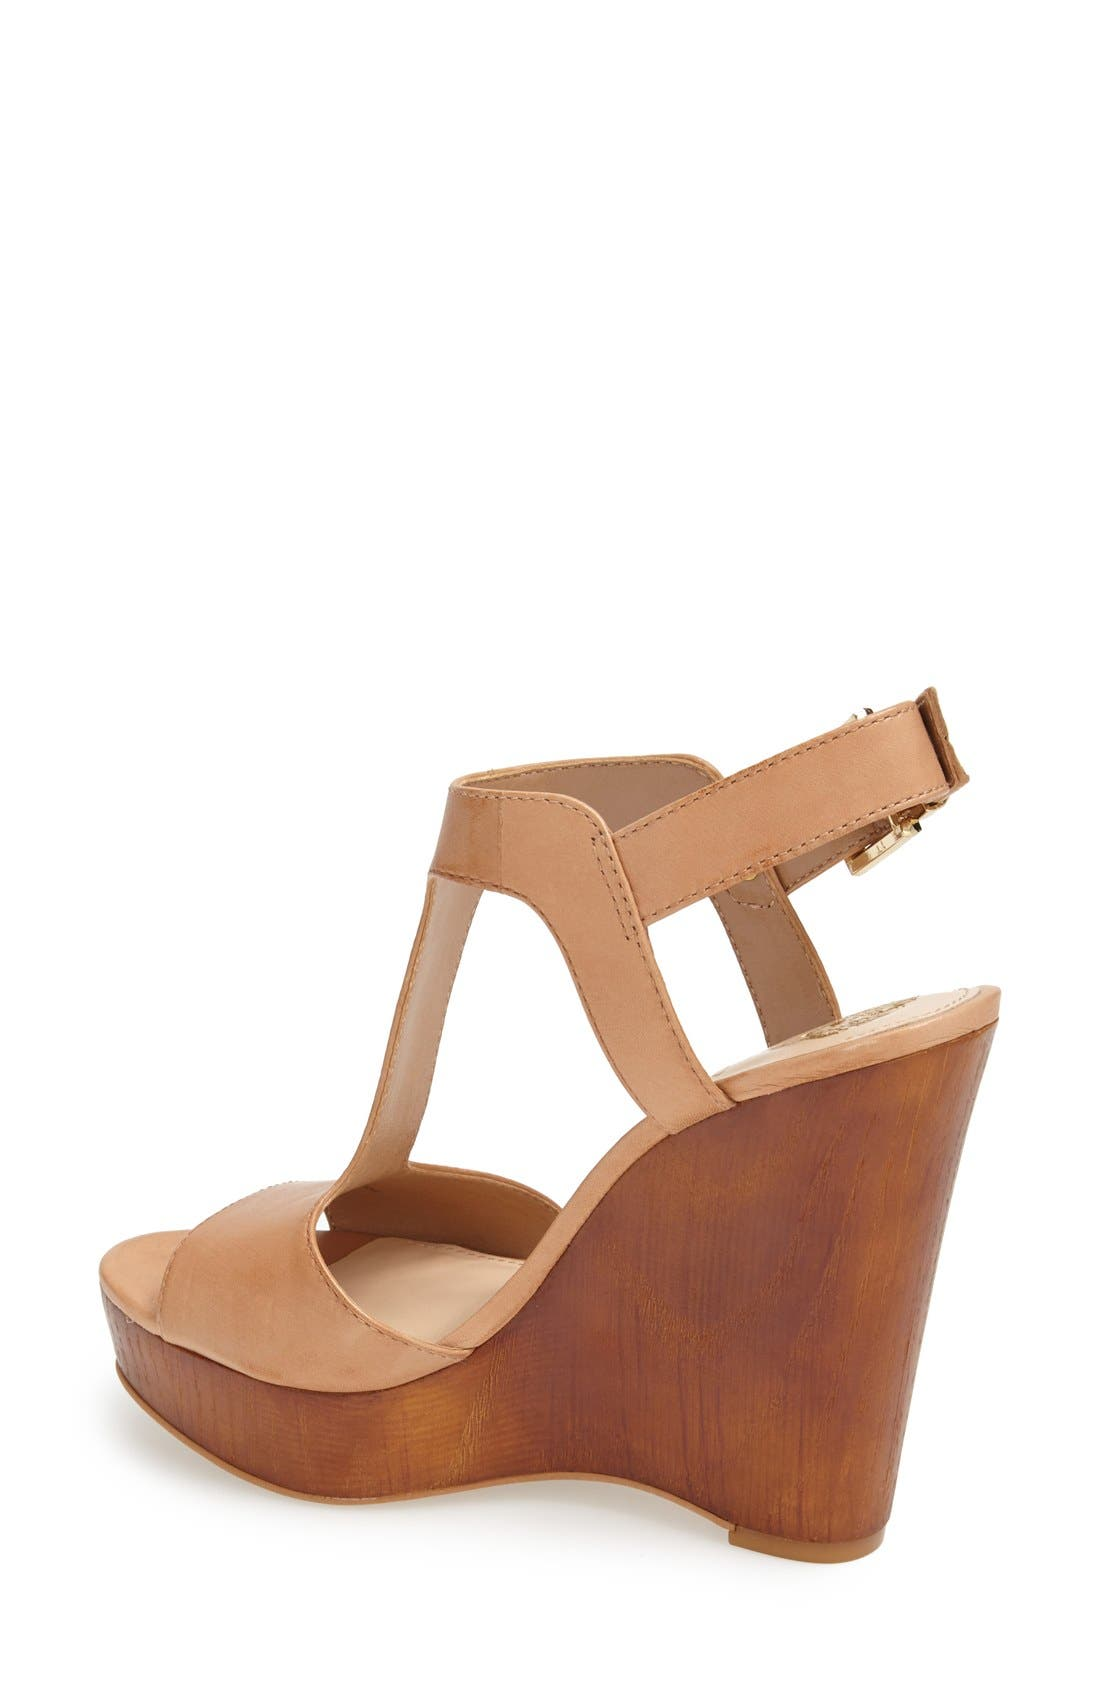 Alternate Image 2  - Vince Camuto 'Mathis' T-Strap Wedge Sandal (Women)